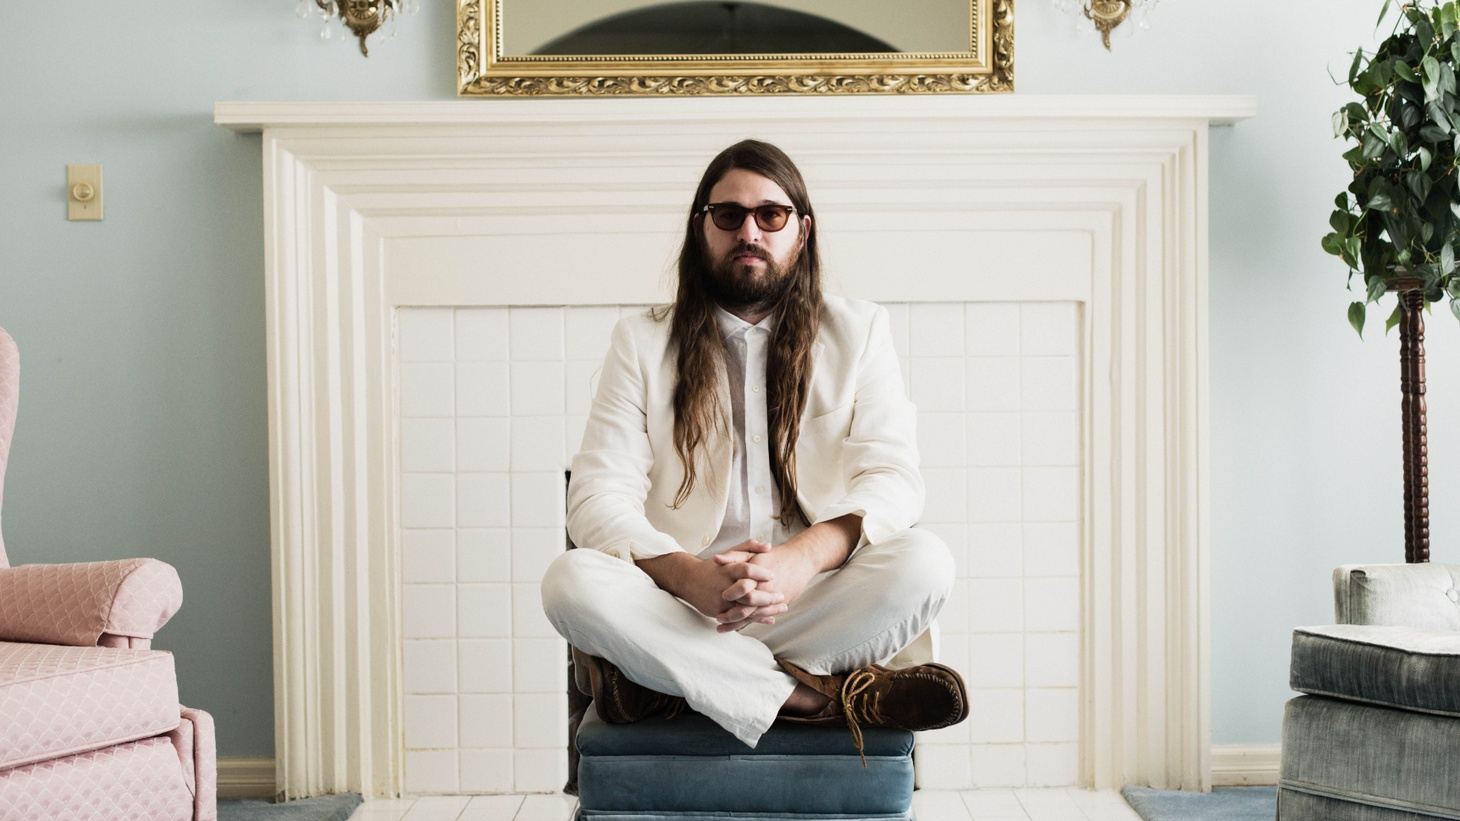 Singer/songwriter Matthew E. White has collaborated with the likes of Justin Vernon, Sharon Van Etten, and John Darnielle of Mountain Goats fame. But with his sophomore solo record, White aims straight for the heart of modern Americana with an album of intriguing sounds.